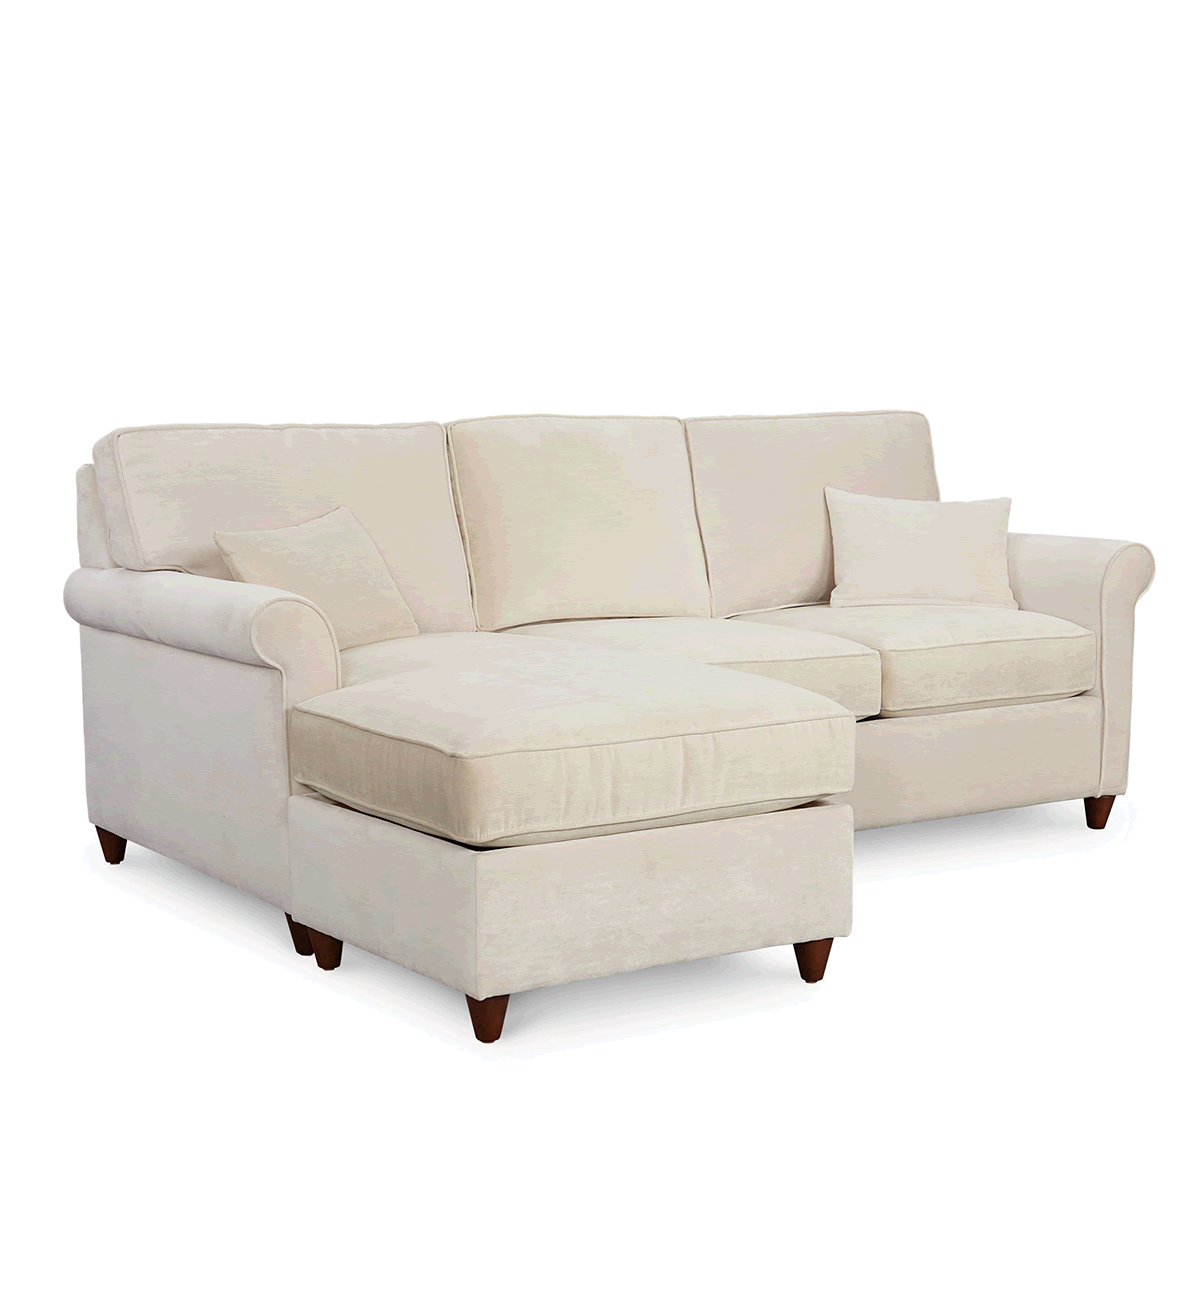 Sofas Couches Sectional Sofas Couches And Sofas Macy 39s